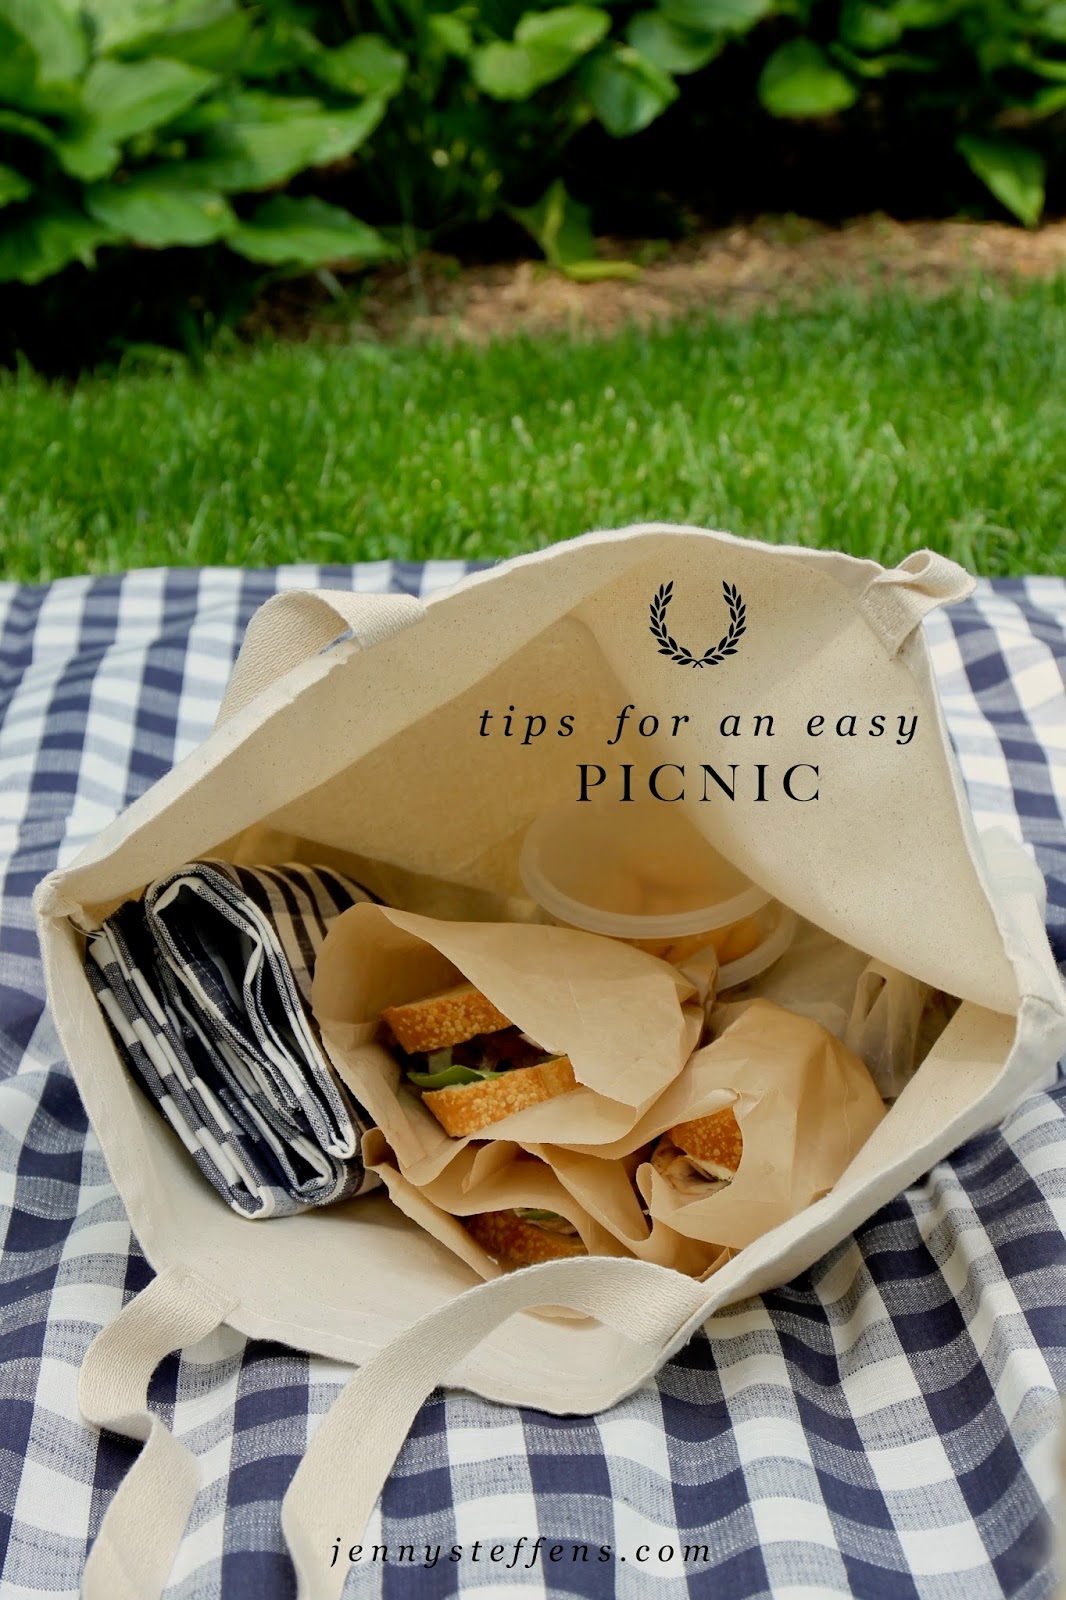 jenny steffens hobick simple summer picnics in our backyard